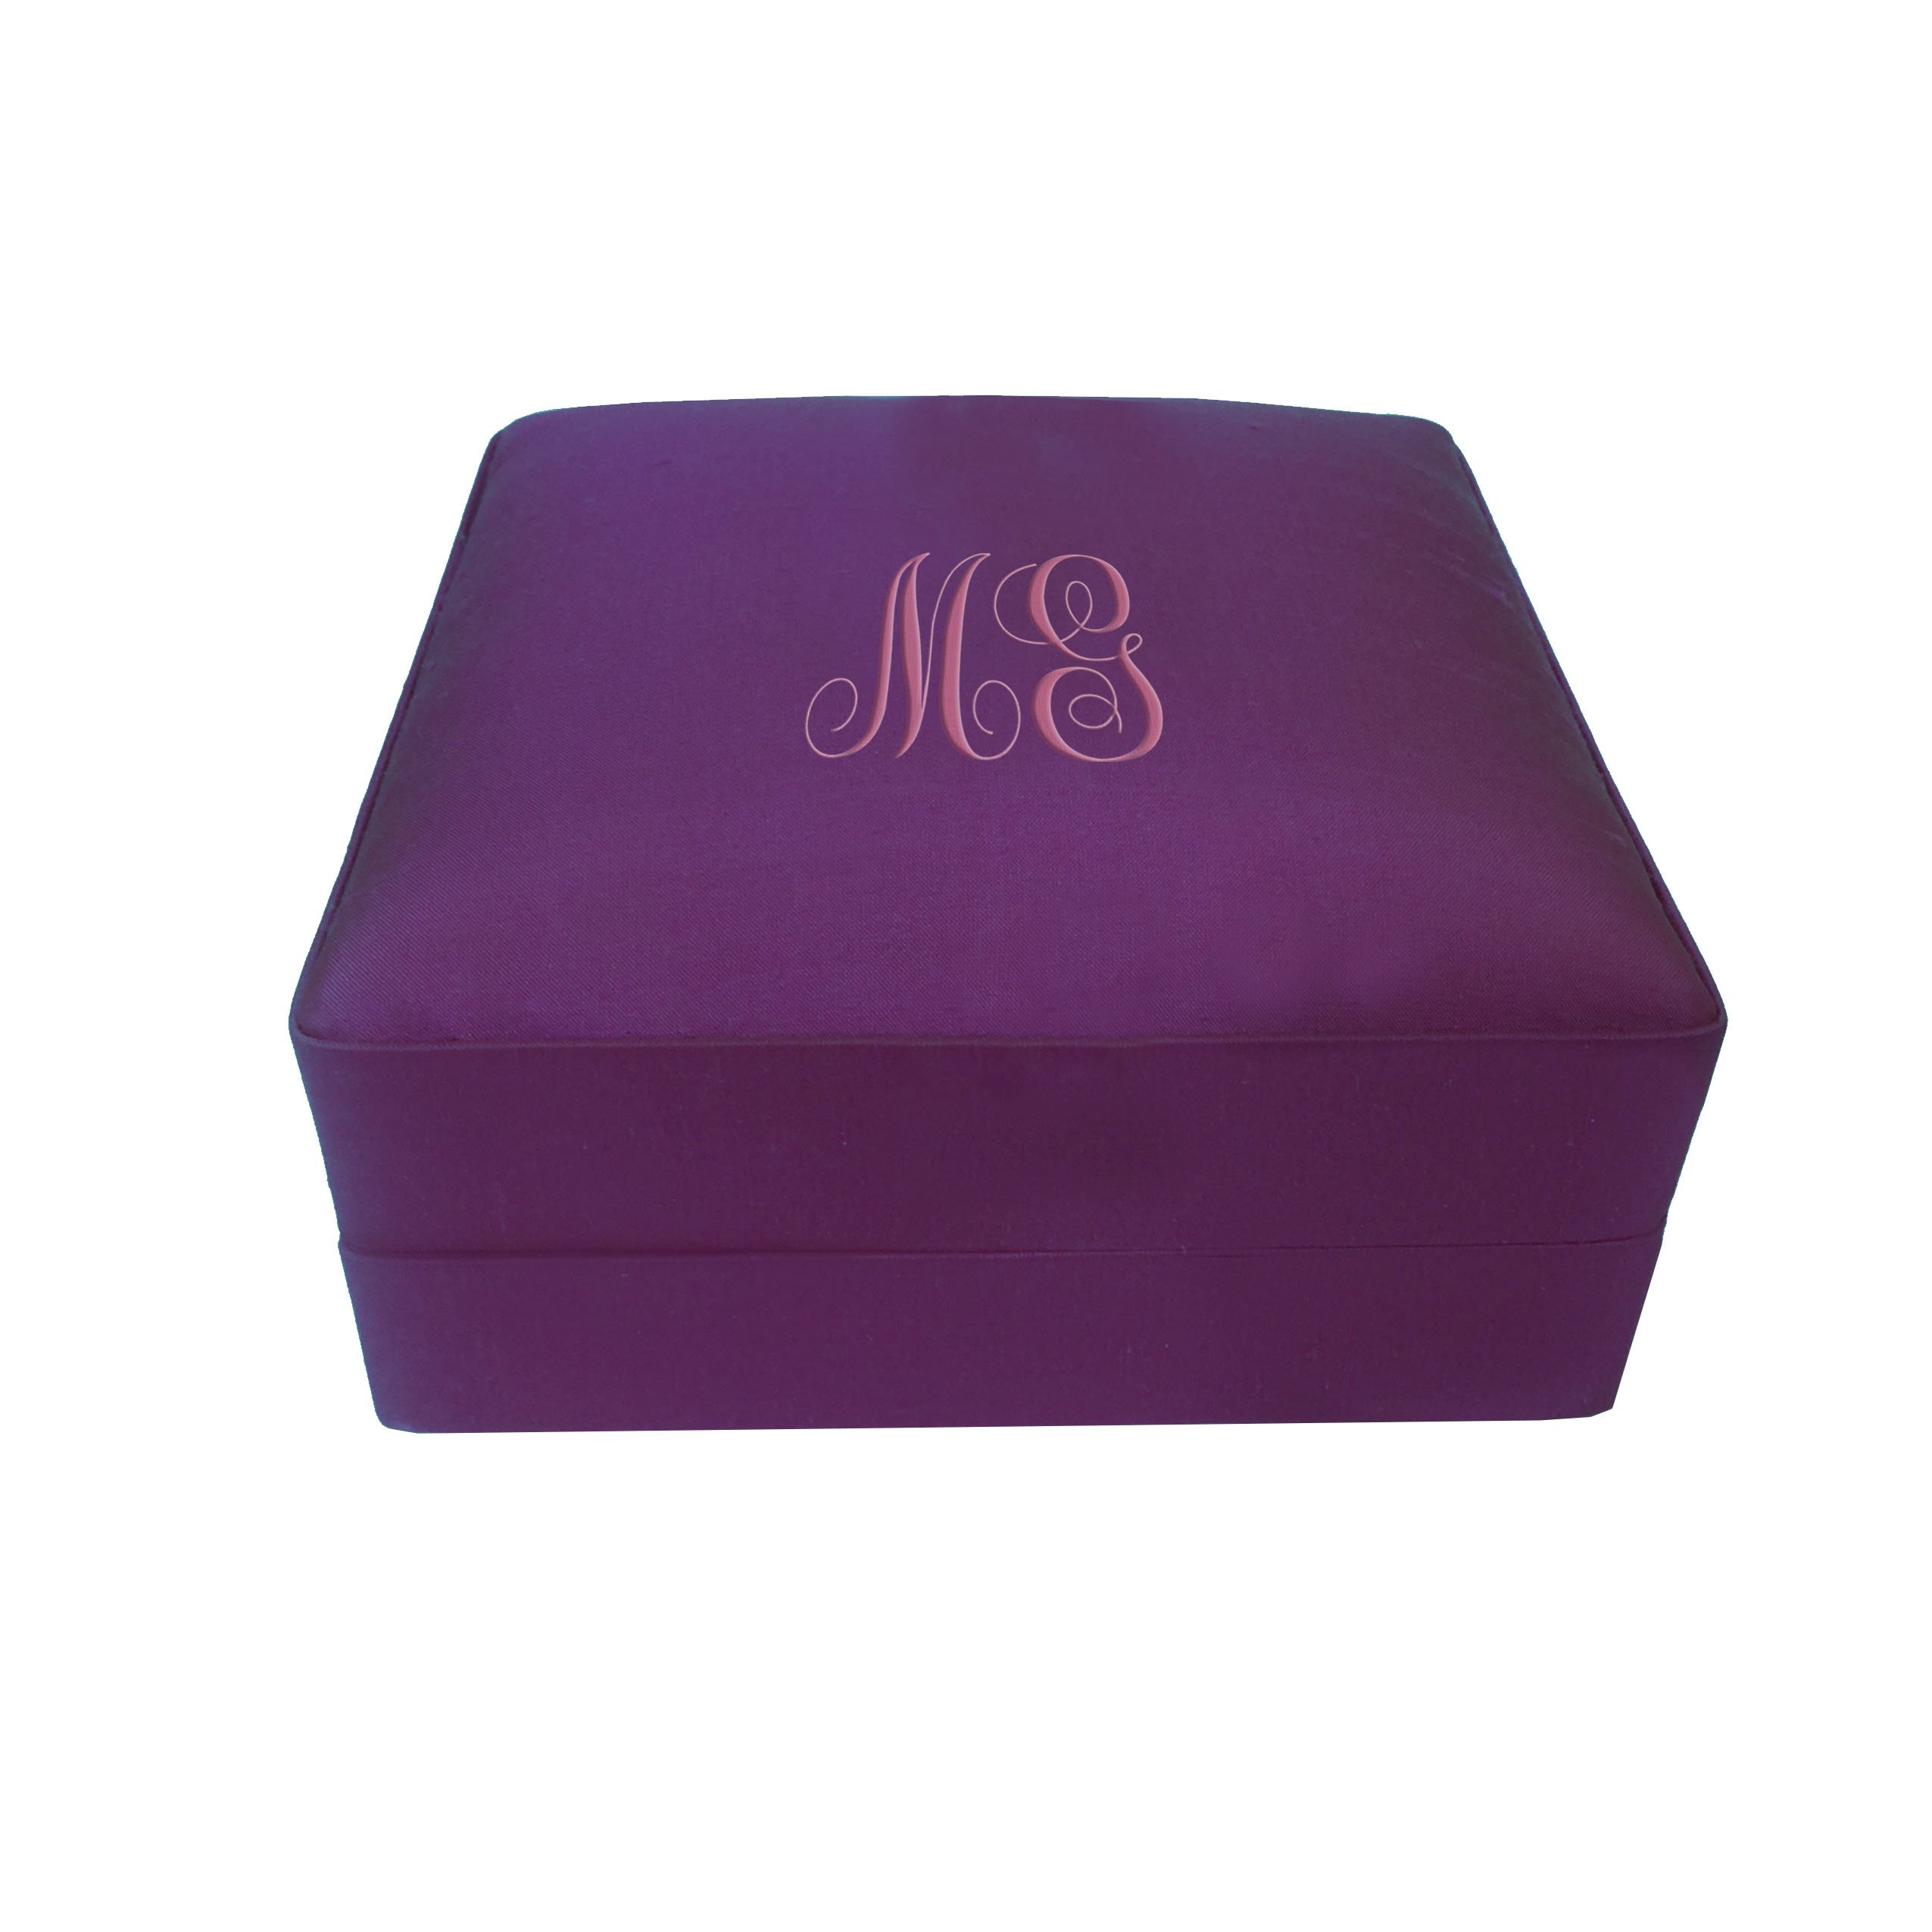 Fullsize Of Personalized Jewelry Box